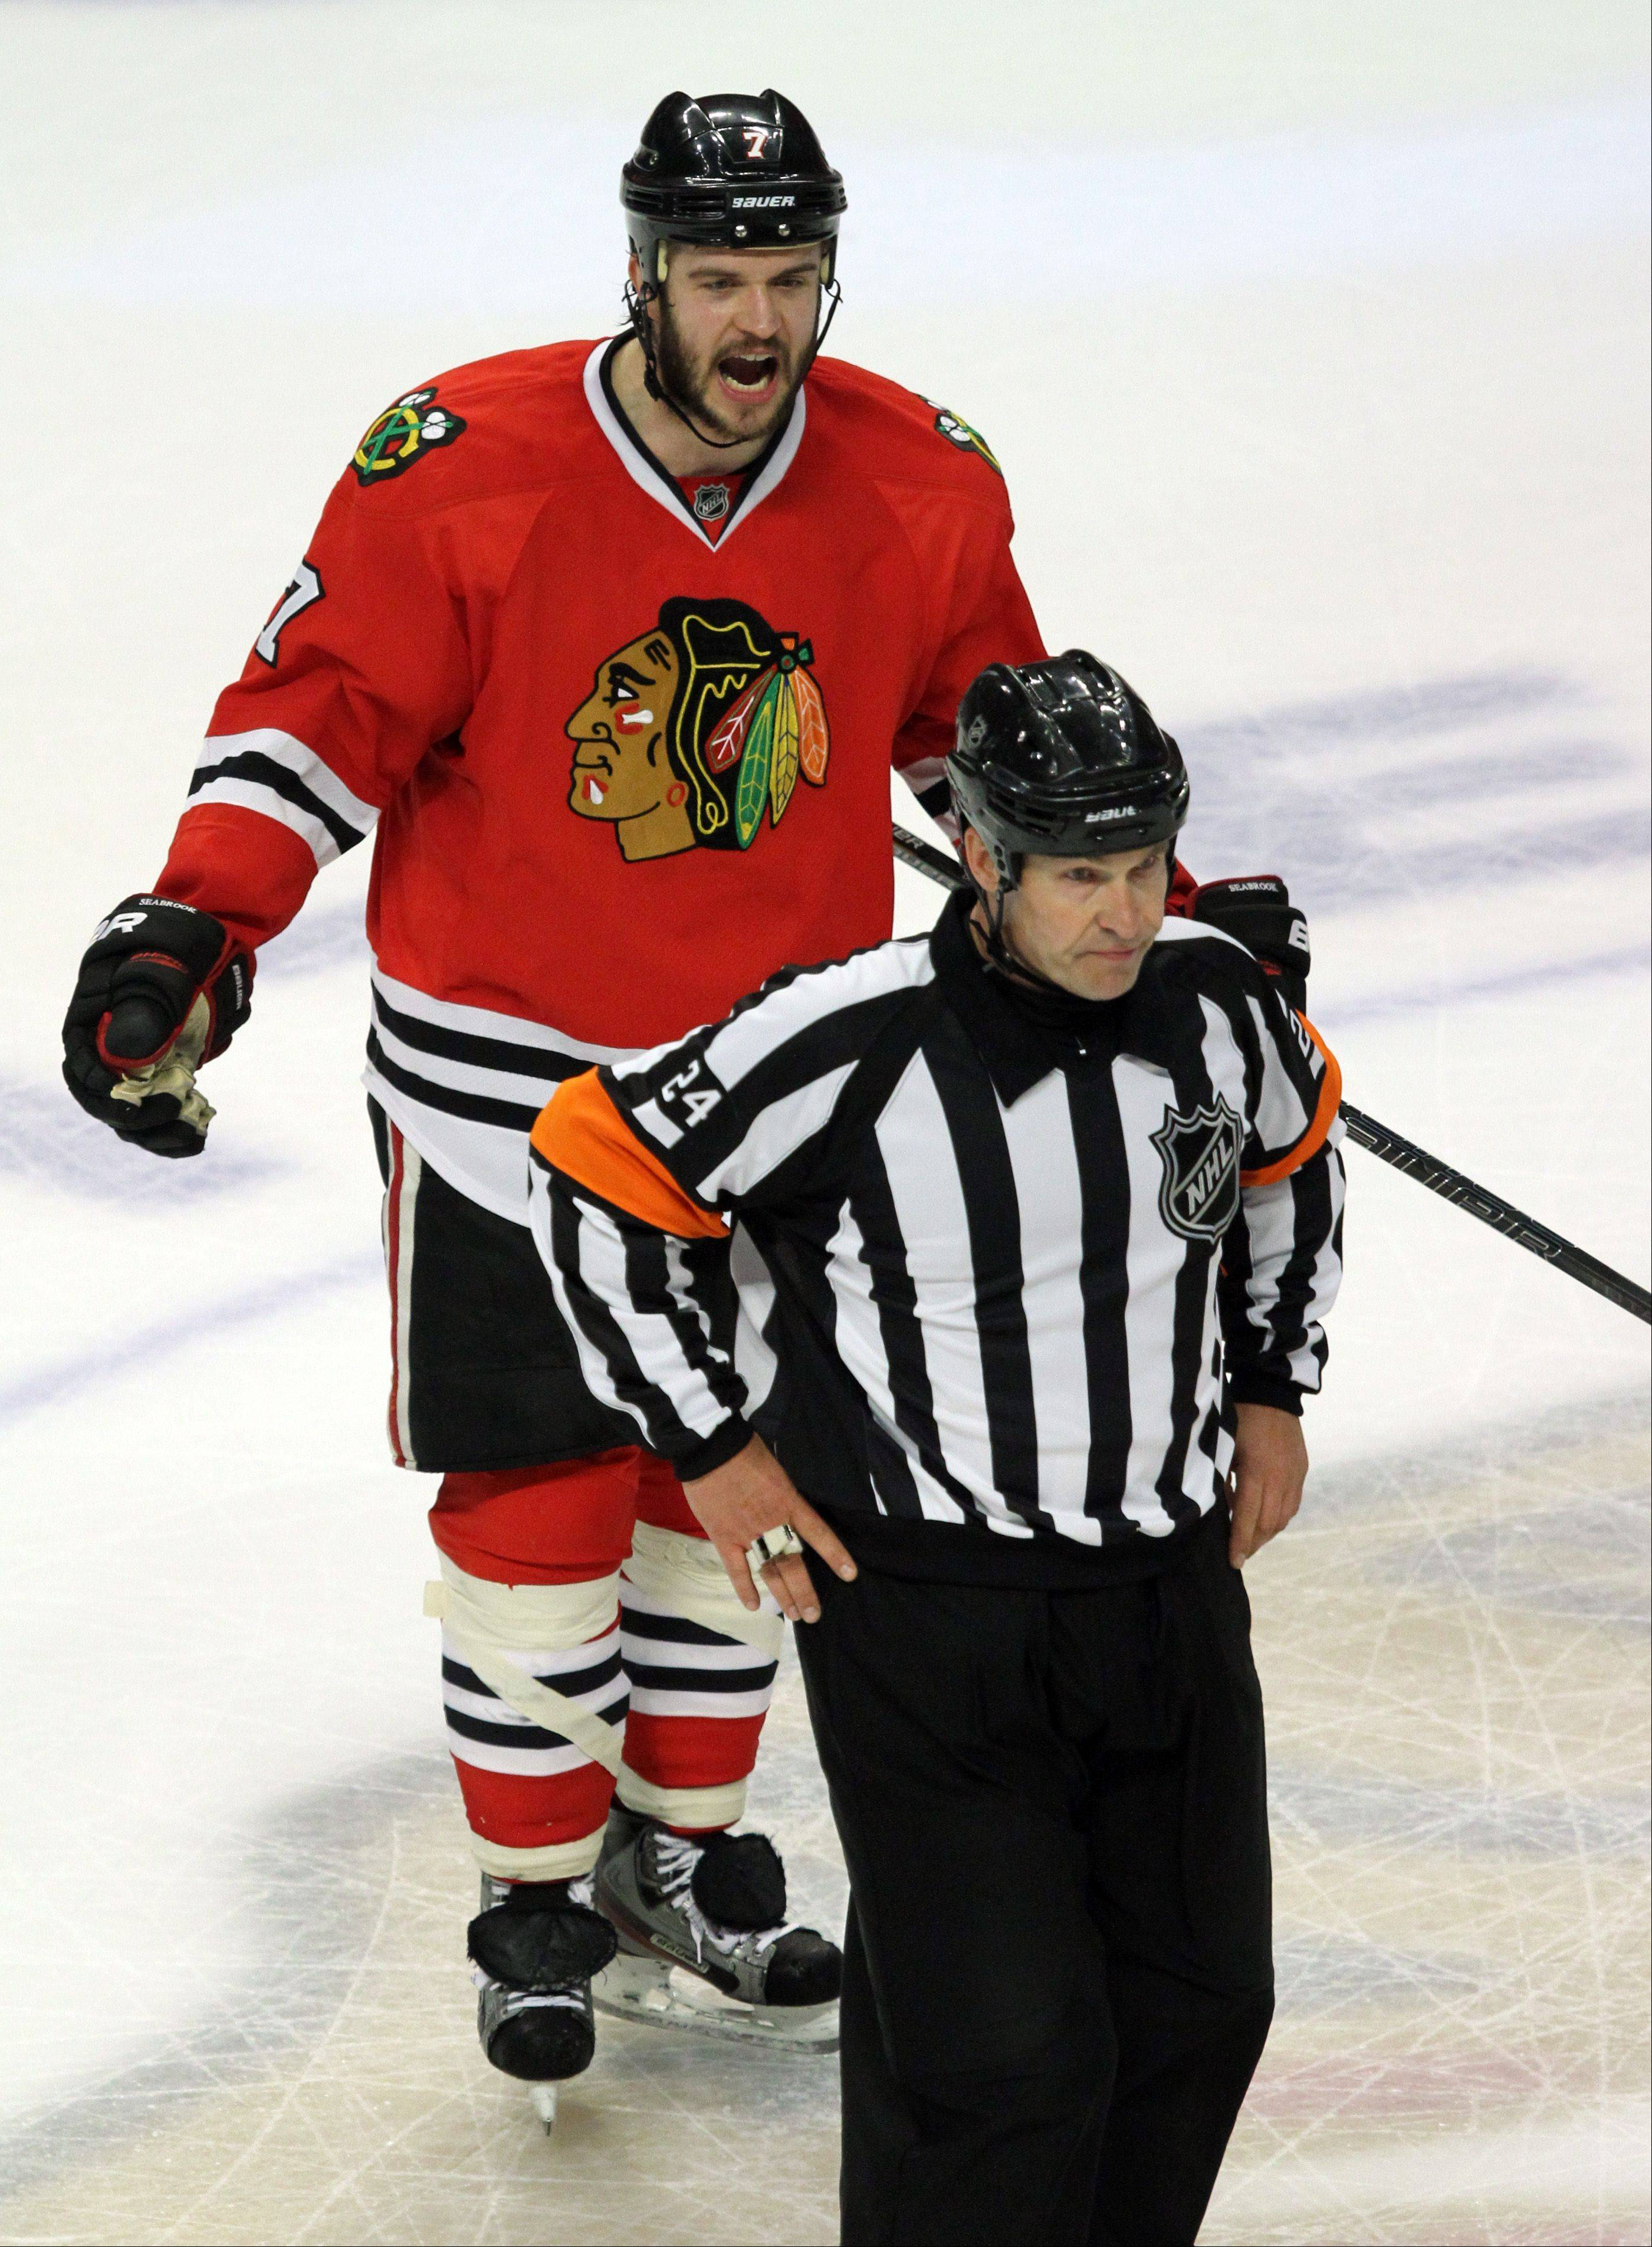 Blackhawks defenseman Brent Seabrook argues a ruling by an official calling off a goal by Niklas Hjalmarsson in the third period of Game 7 Thursday at the United Center.